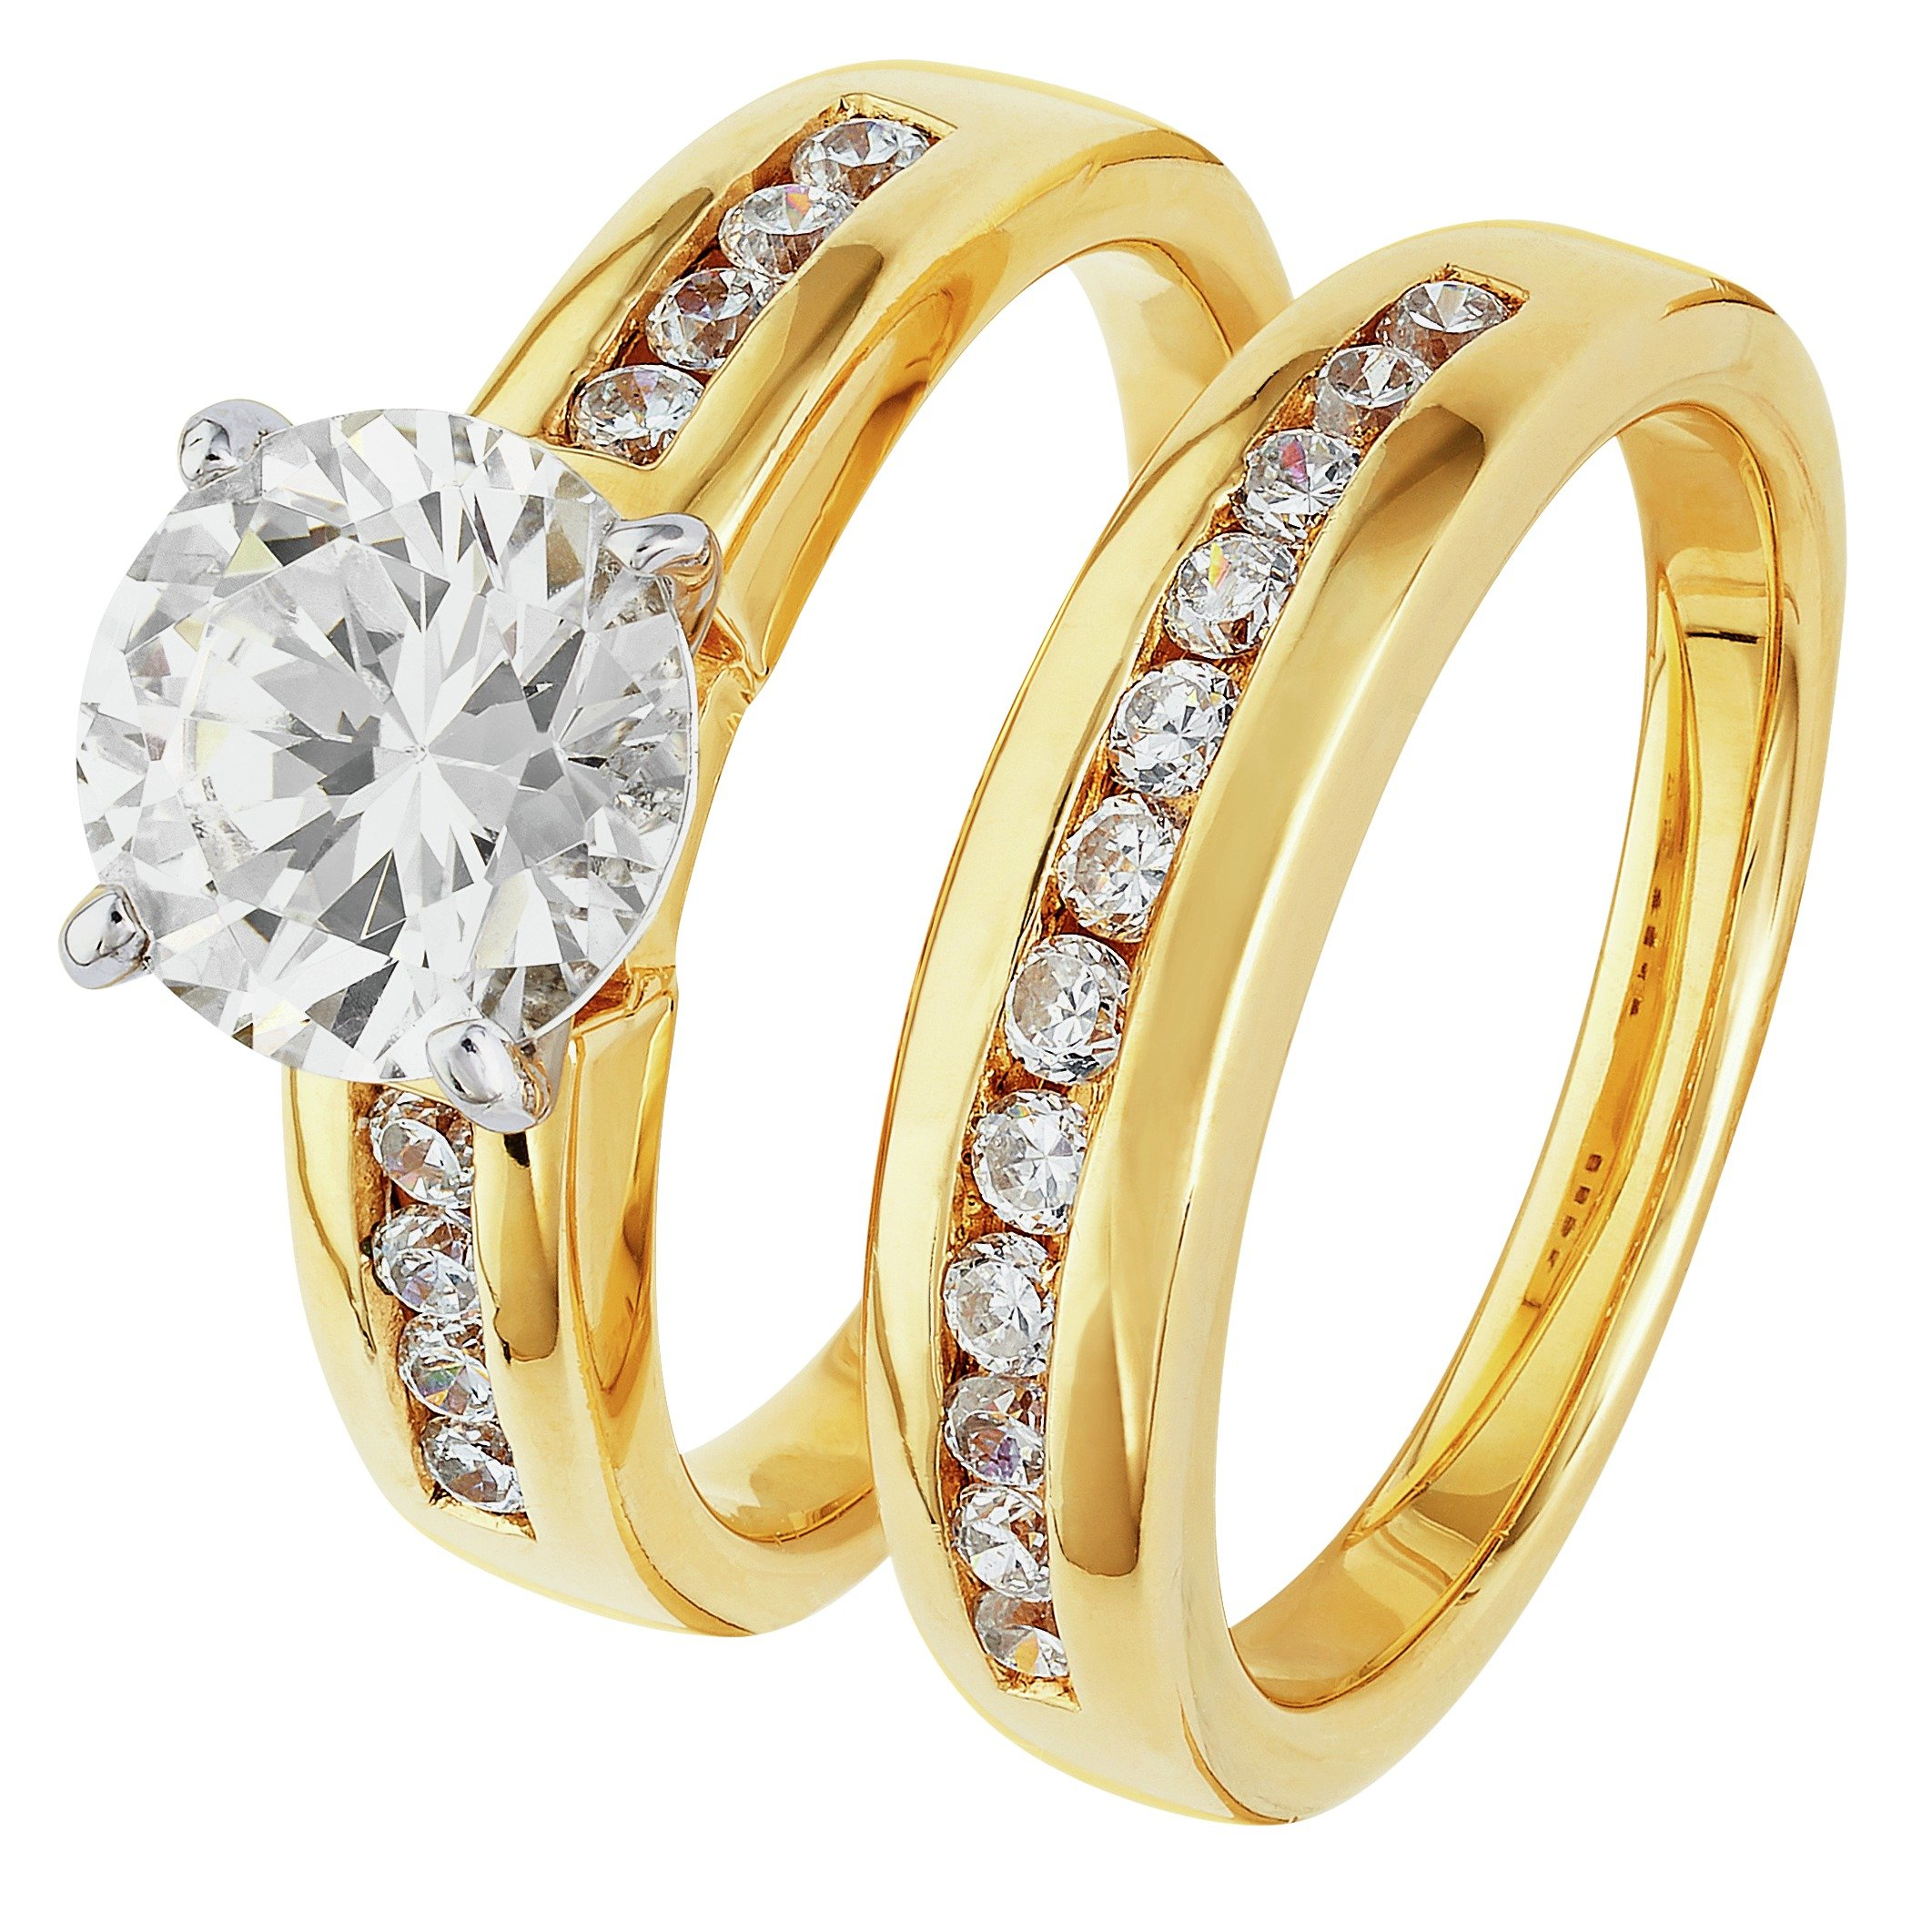 18 Carat Gold - Plated Silver 2 Carat Look Cubic Zirconia Halo - 2 Ring Set